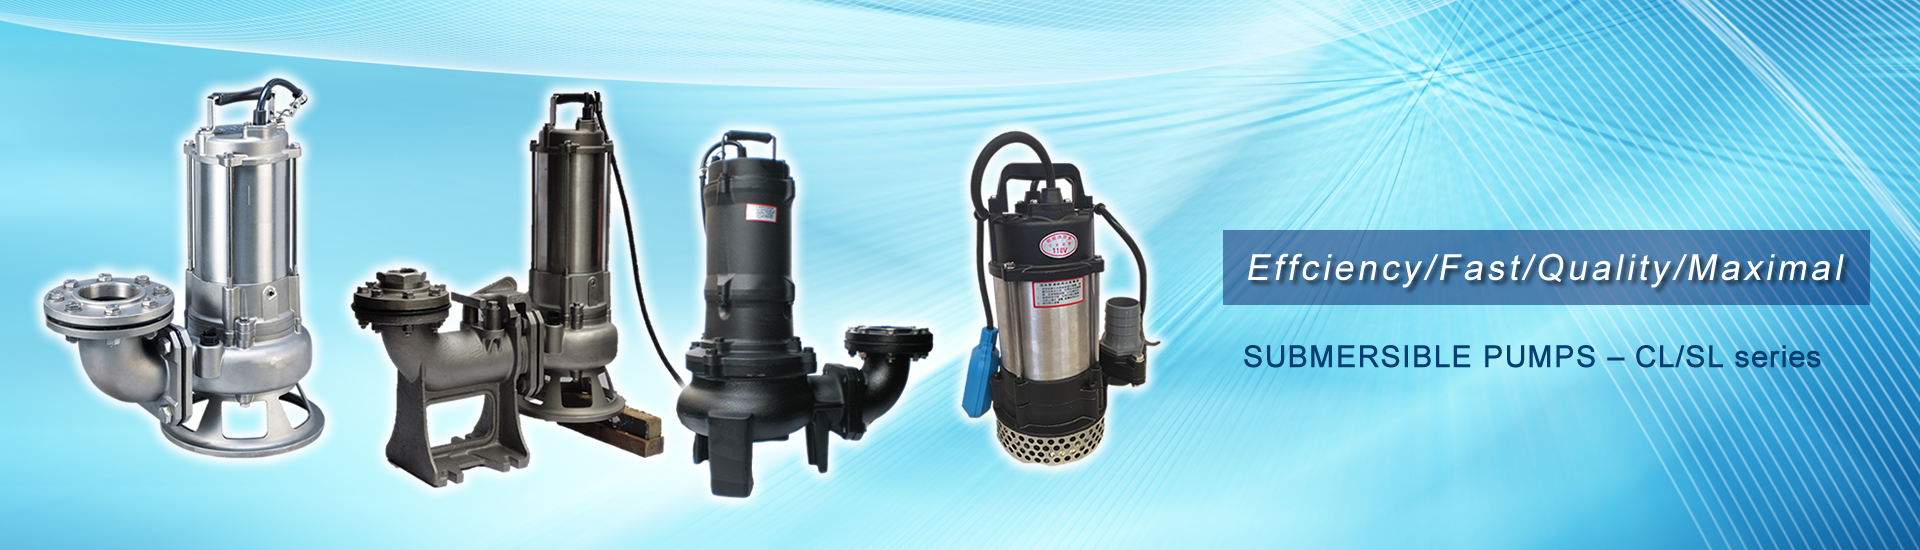 SUBMERSIBLE PUMPS – CL/SL series